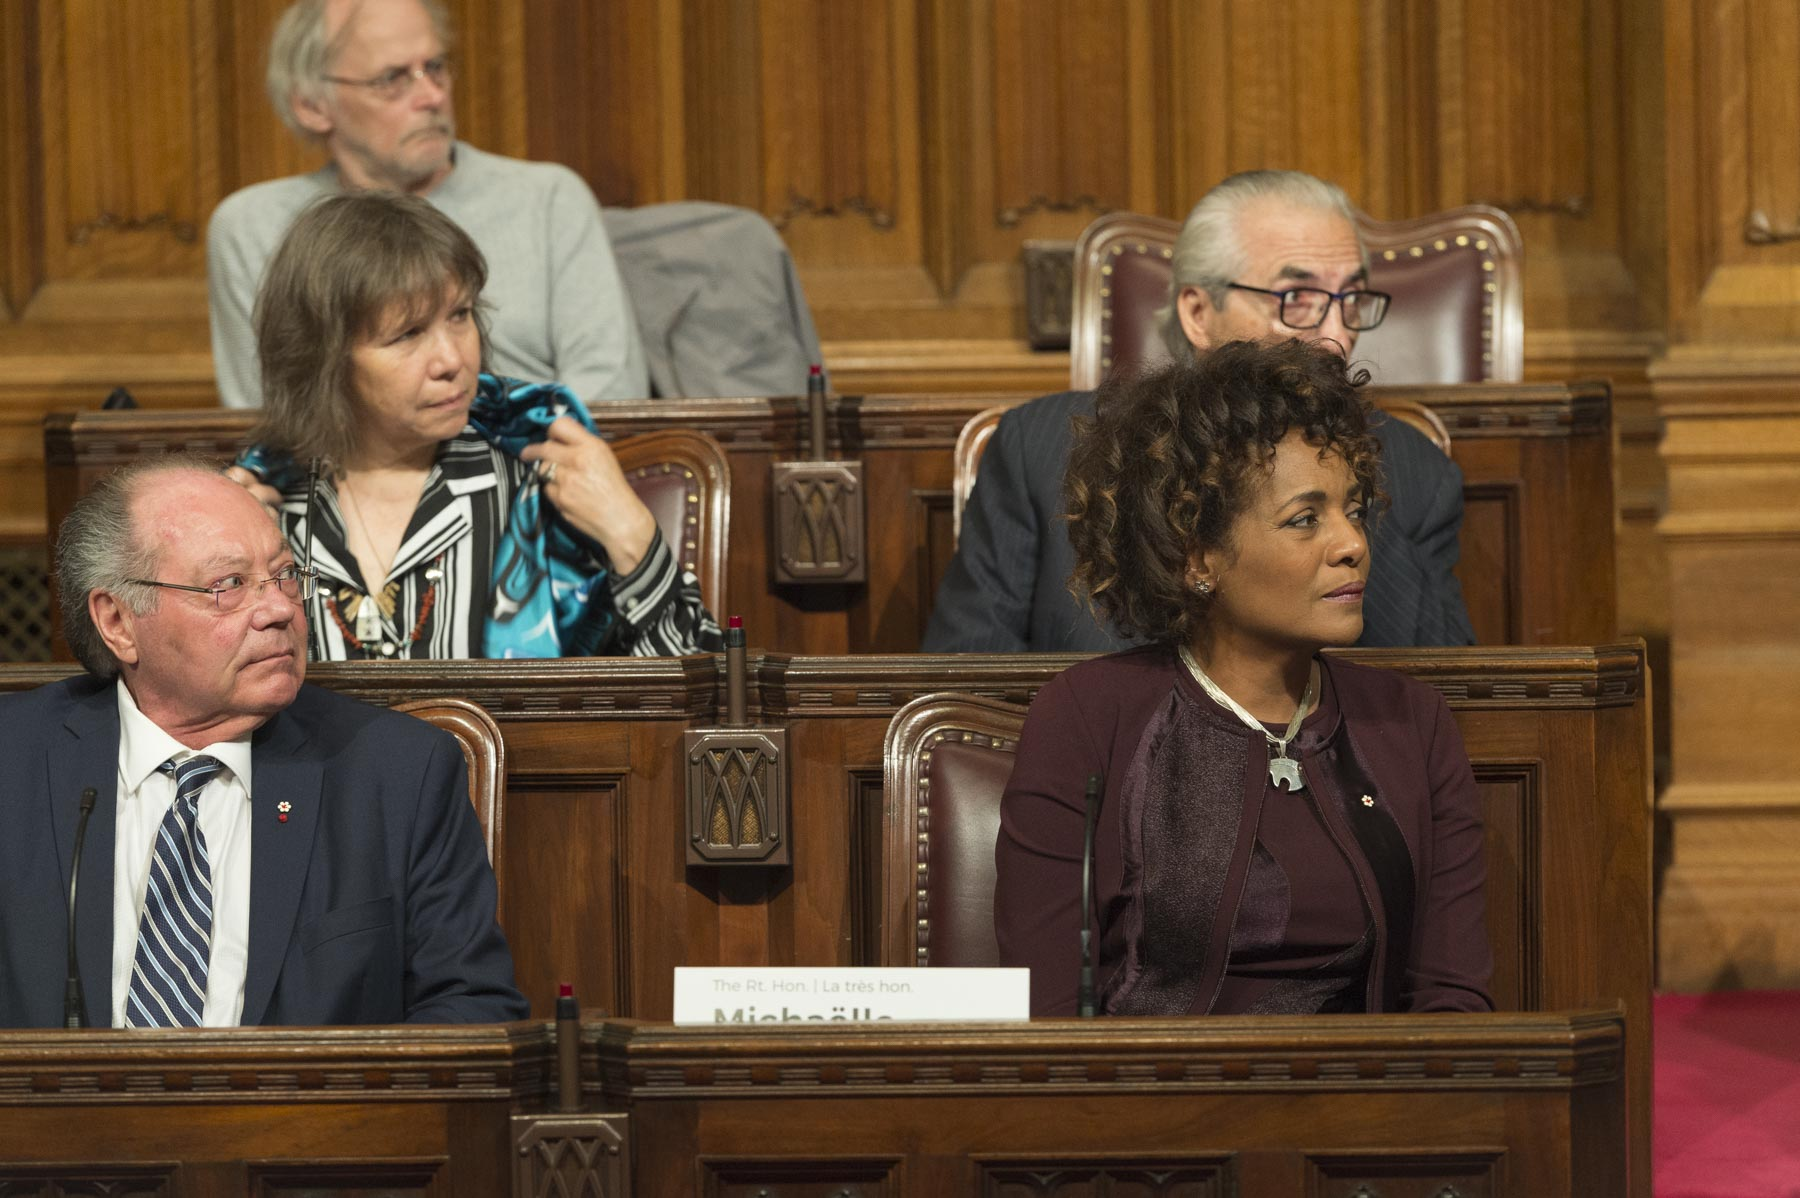 Michaëlle Jean, Secretary General of La Francophonie and 27th Governor General of Canada, was among participants.